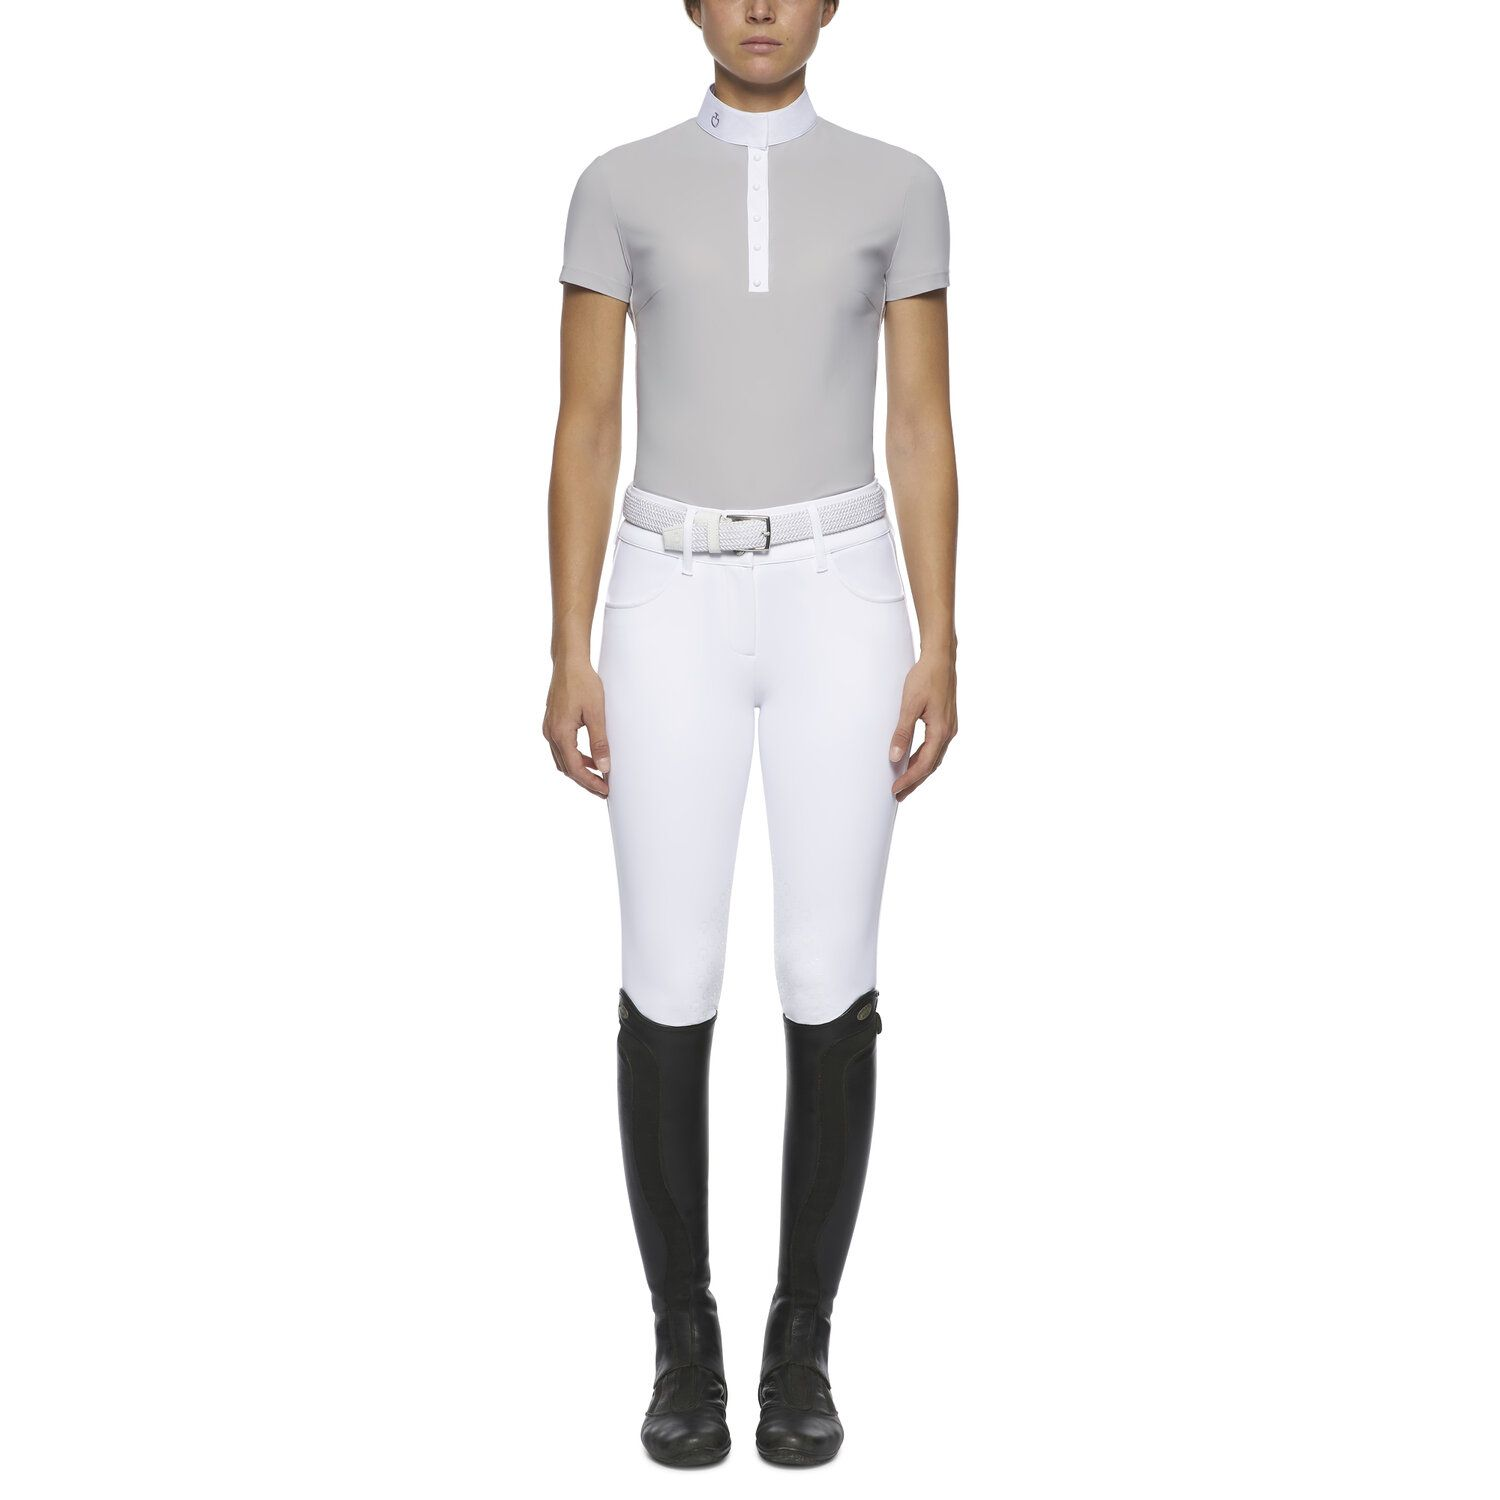 Women's short-sleeved polo with sheer inserts